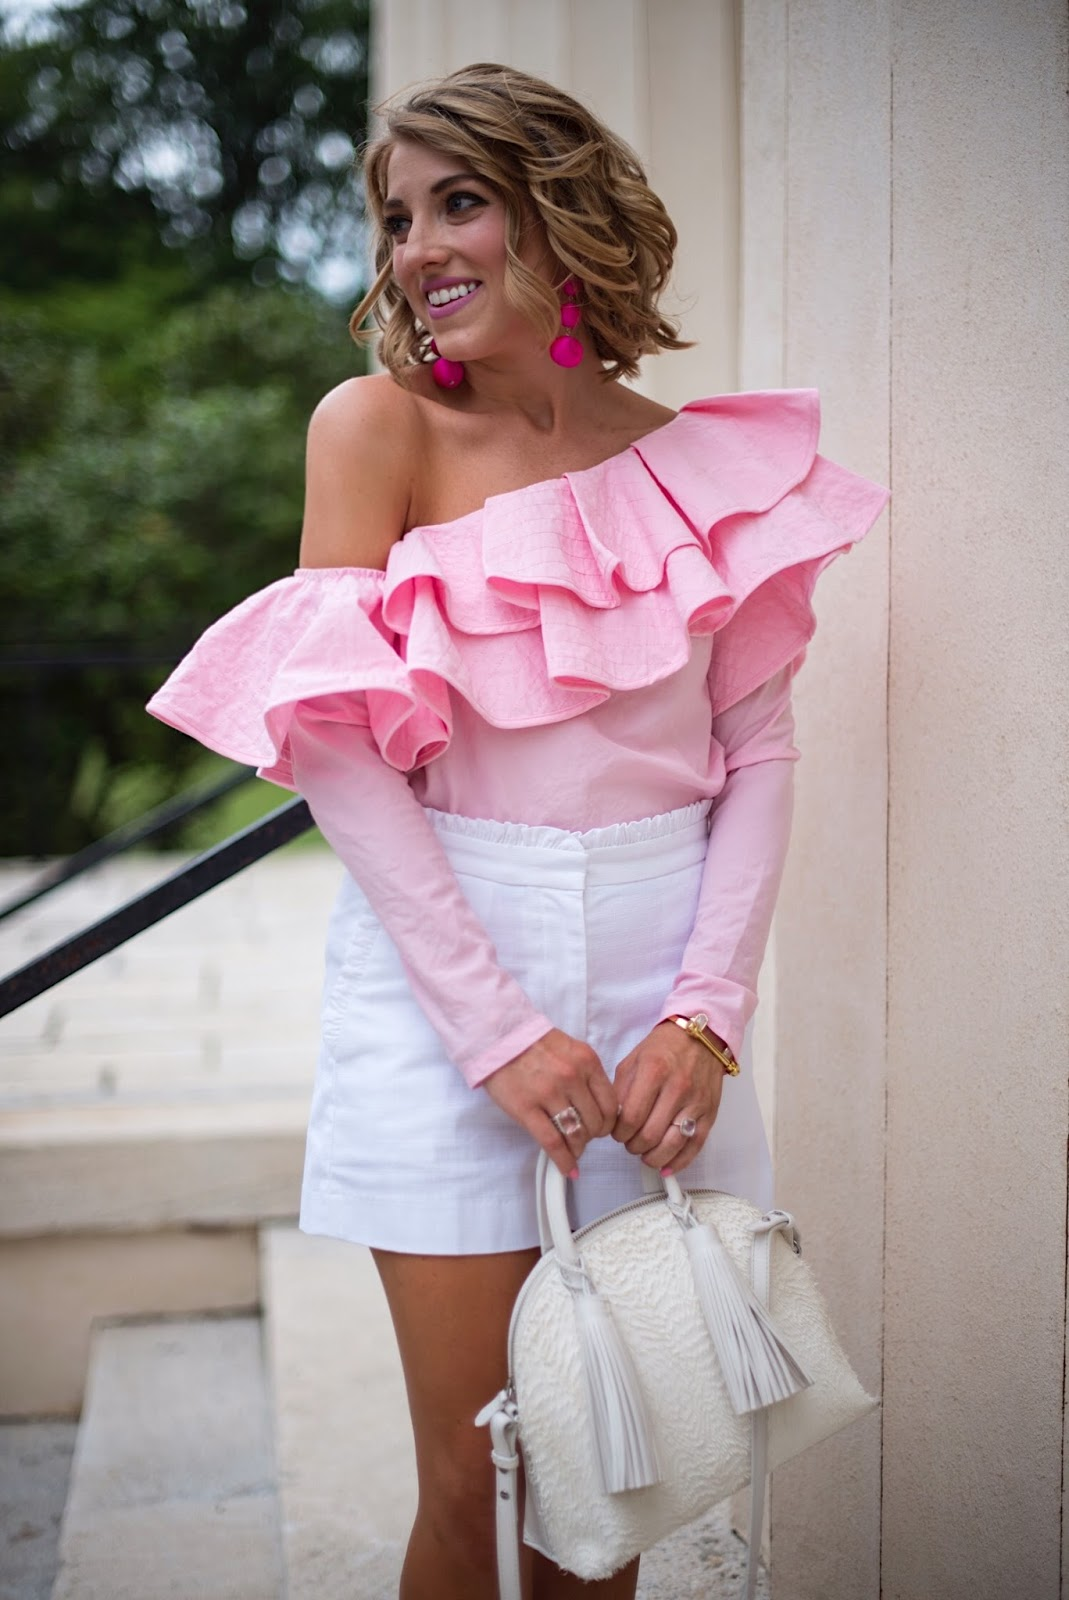 Ruffled Top - Click through to see more on Something Delightful Blog!